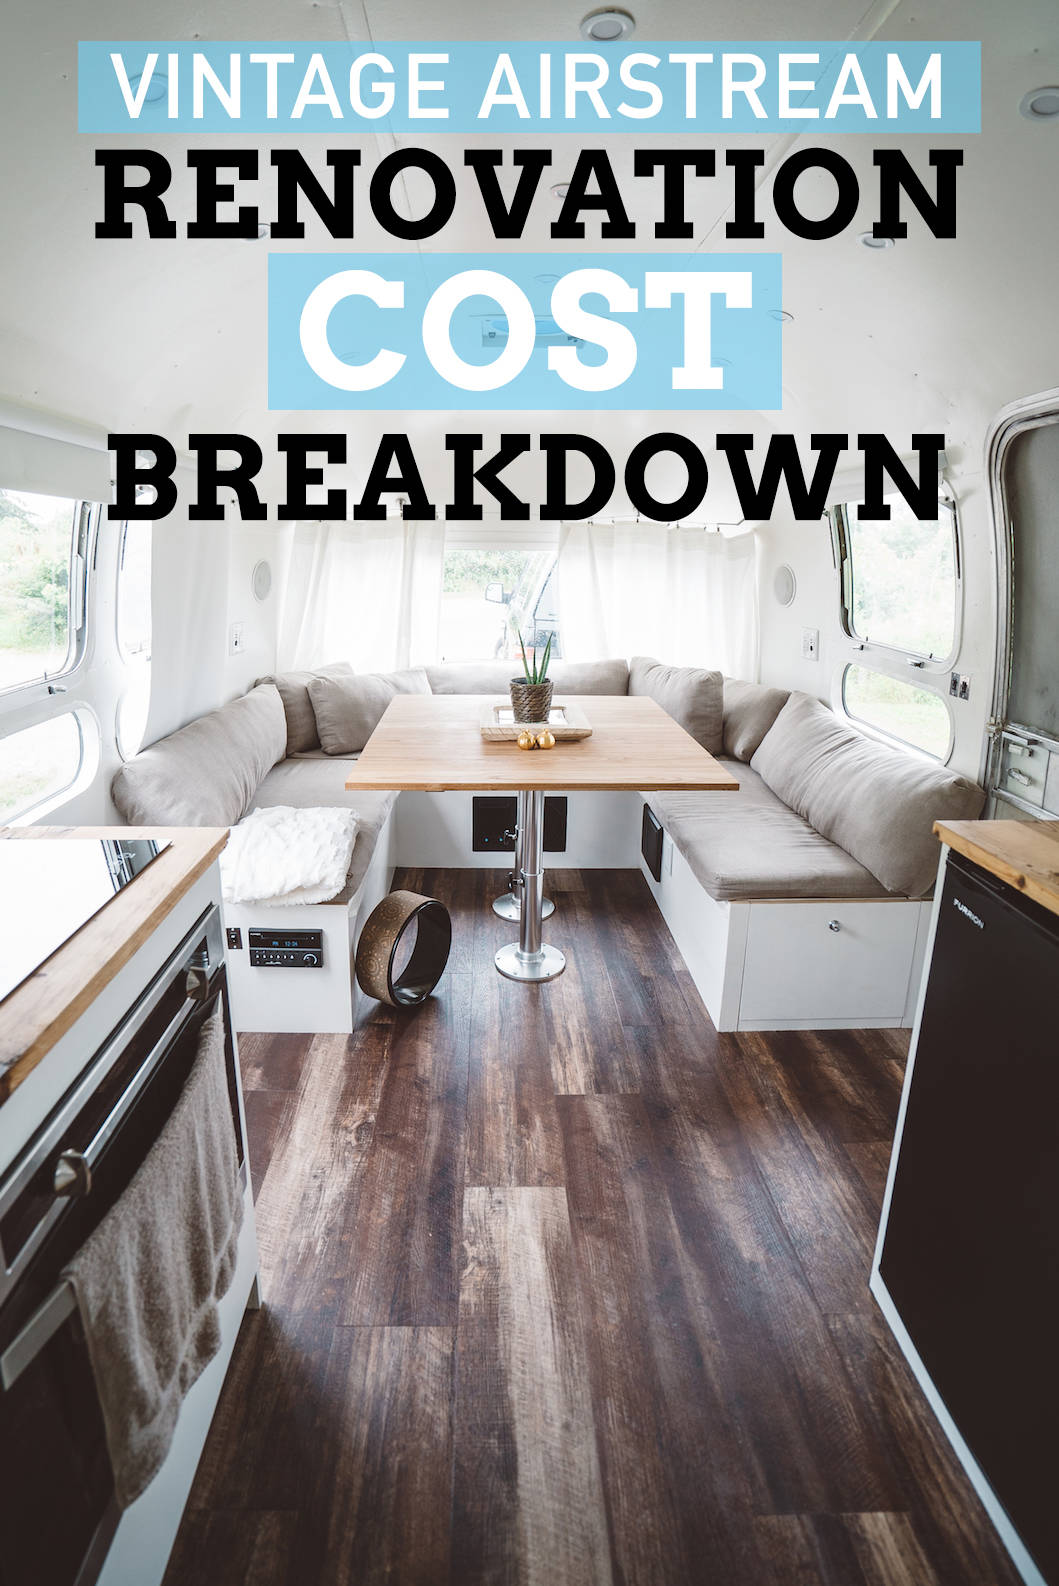 Airstream Renovation Cost Breakdown